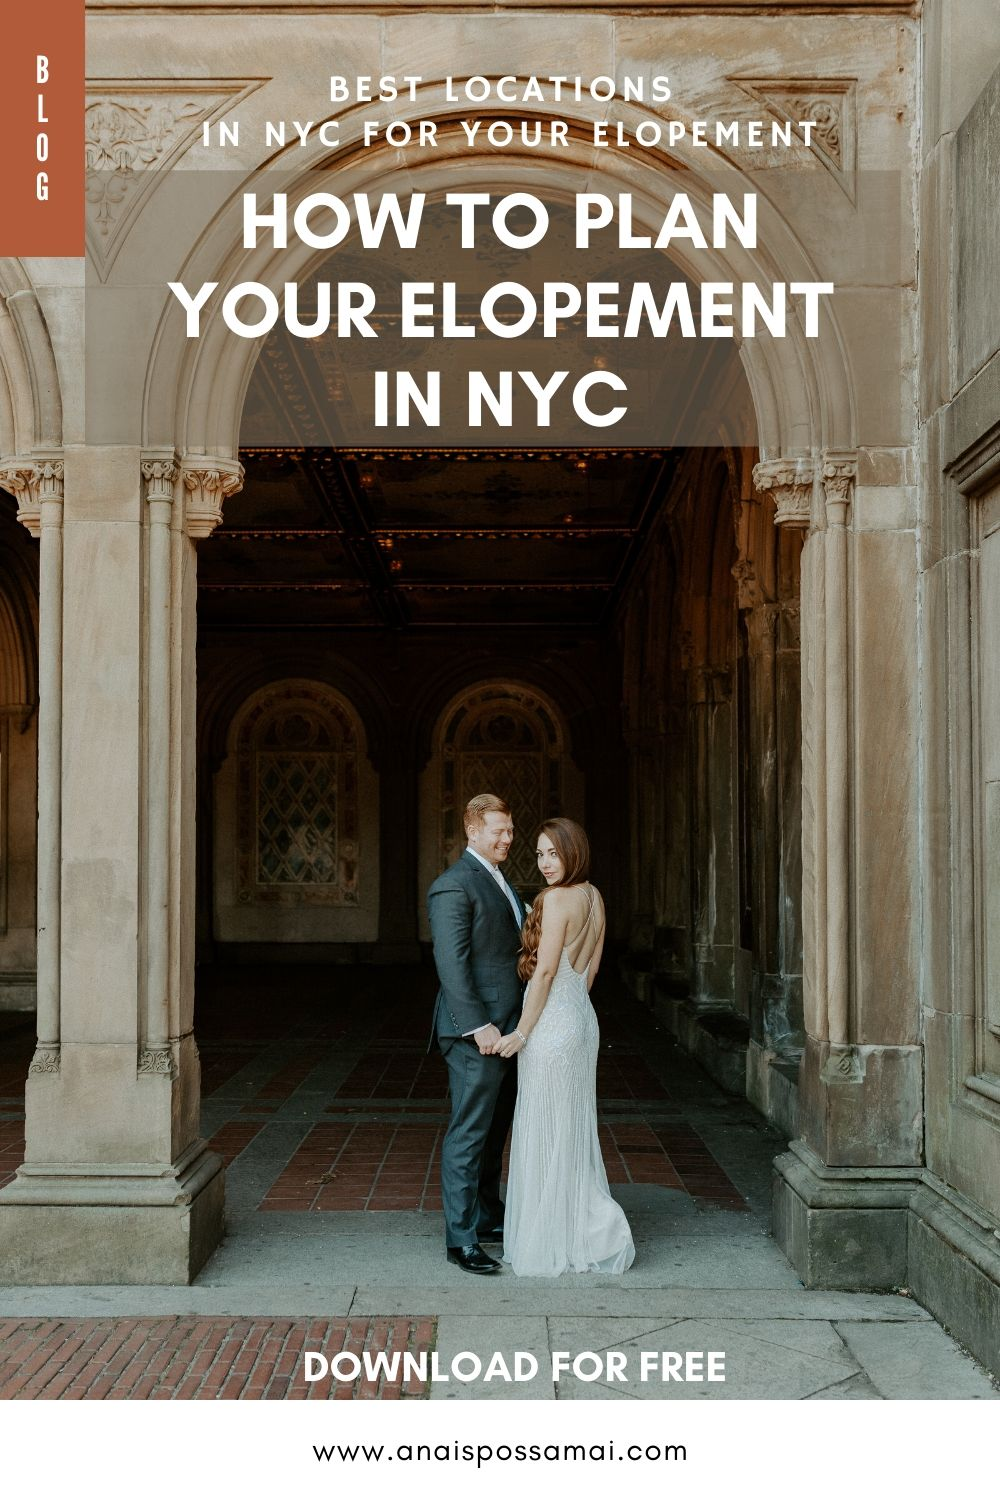 How to plan your elopement in NYC, Where to Elope in NYC, New York elopement photographer, Best elopement locations in NYC